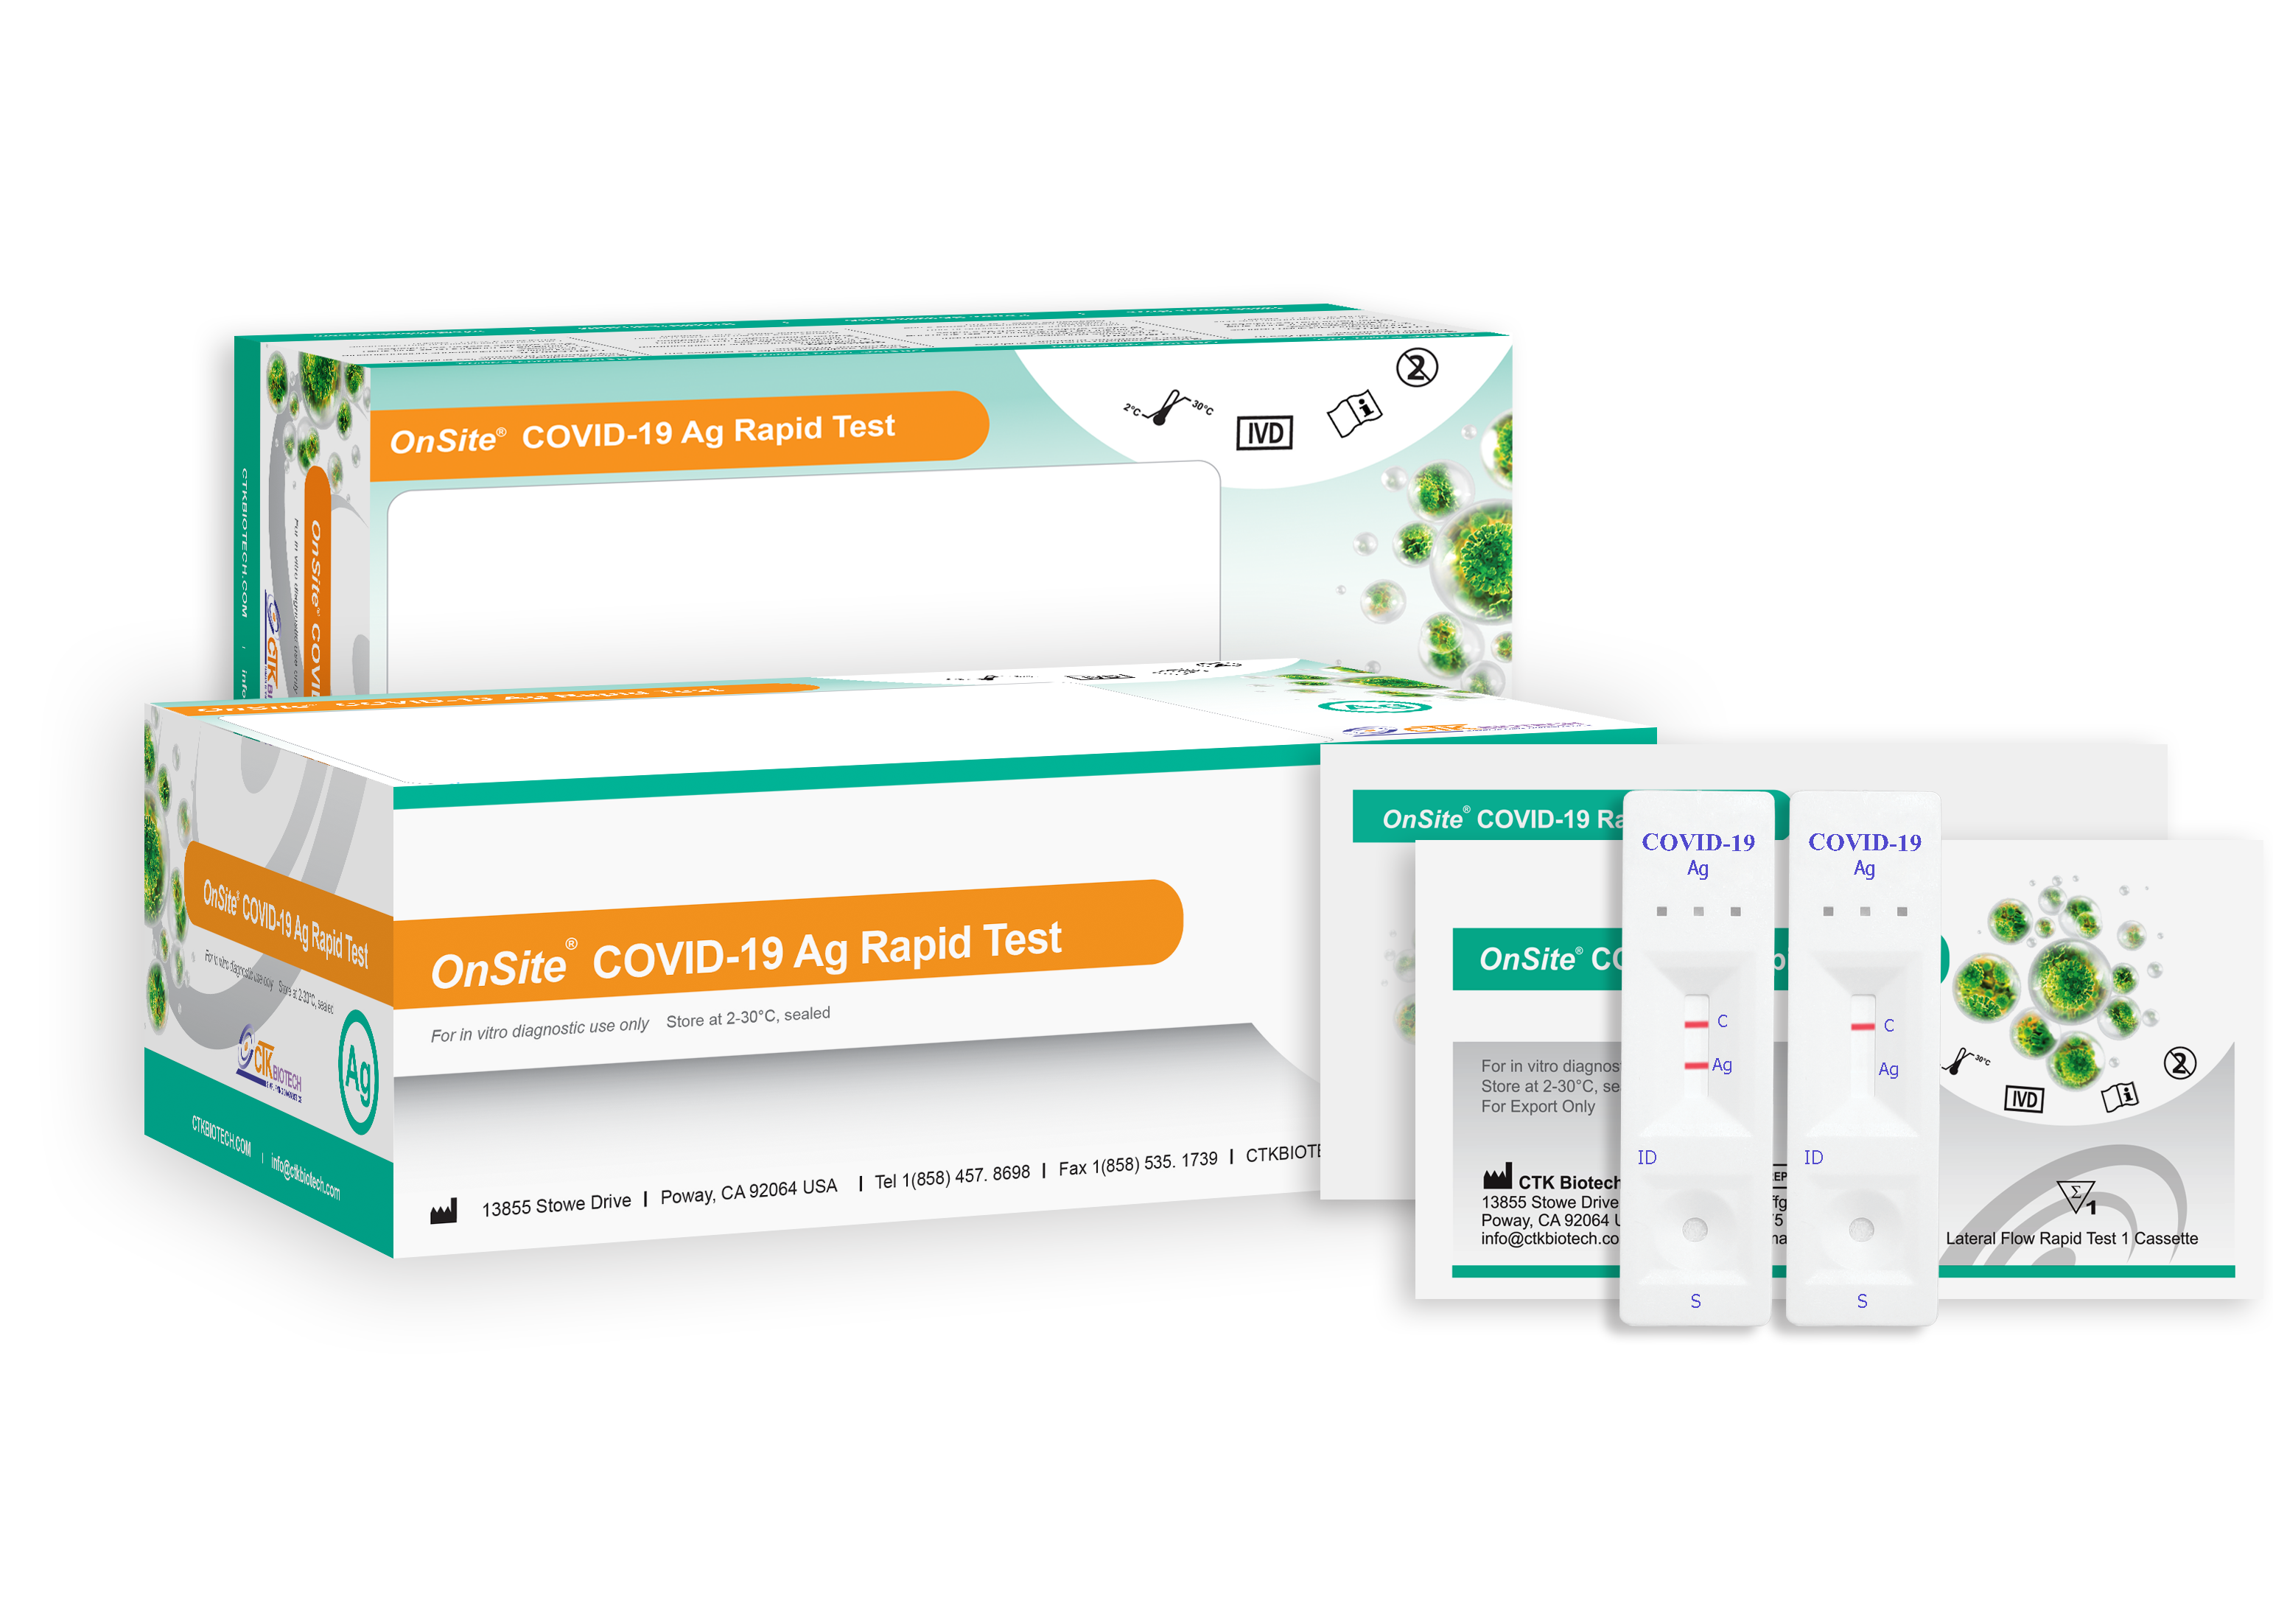 Covid 19 Rapid Antigen Test Kit